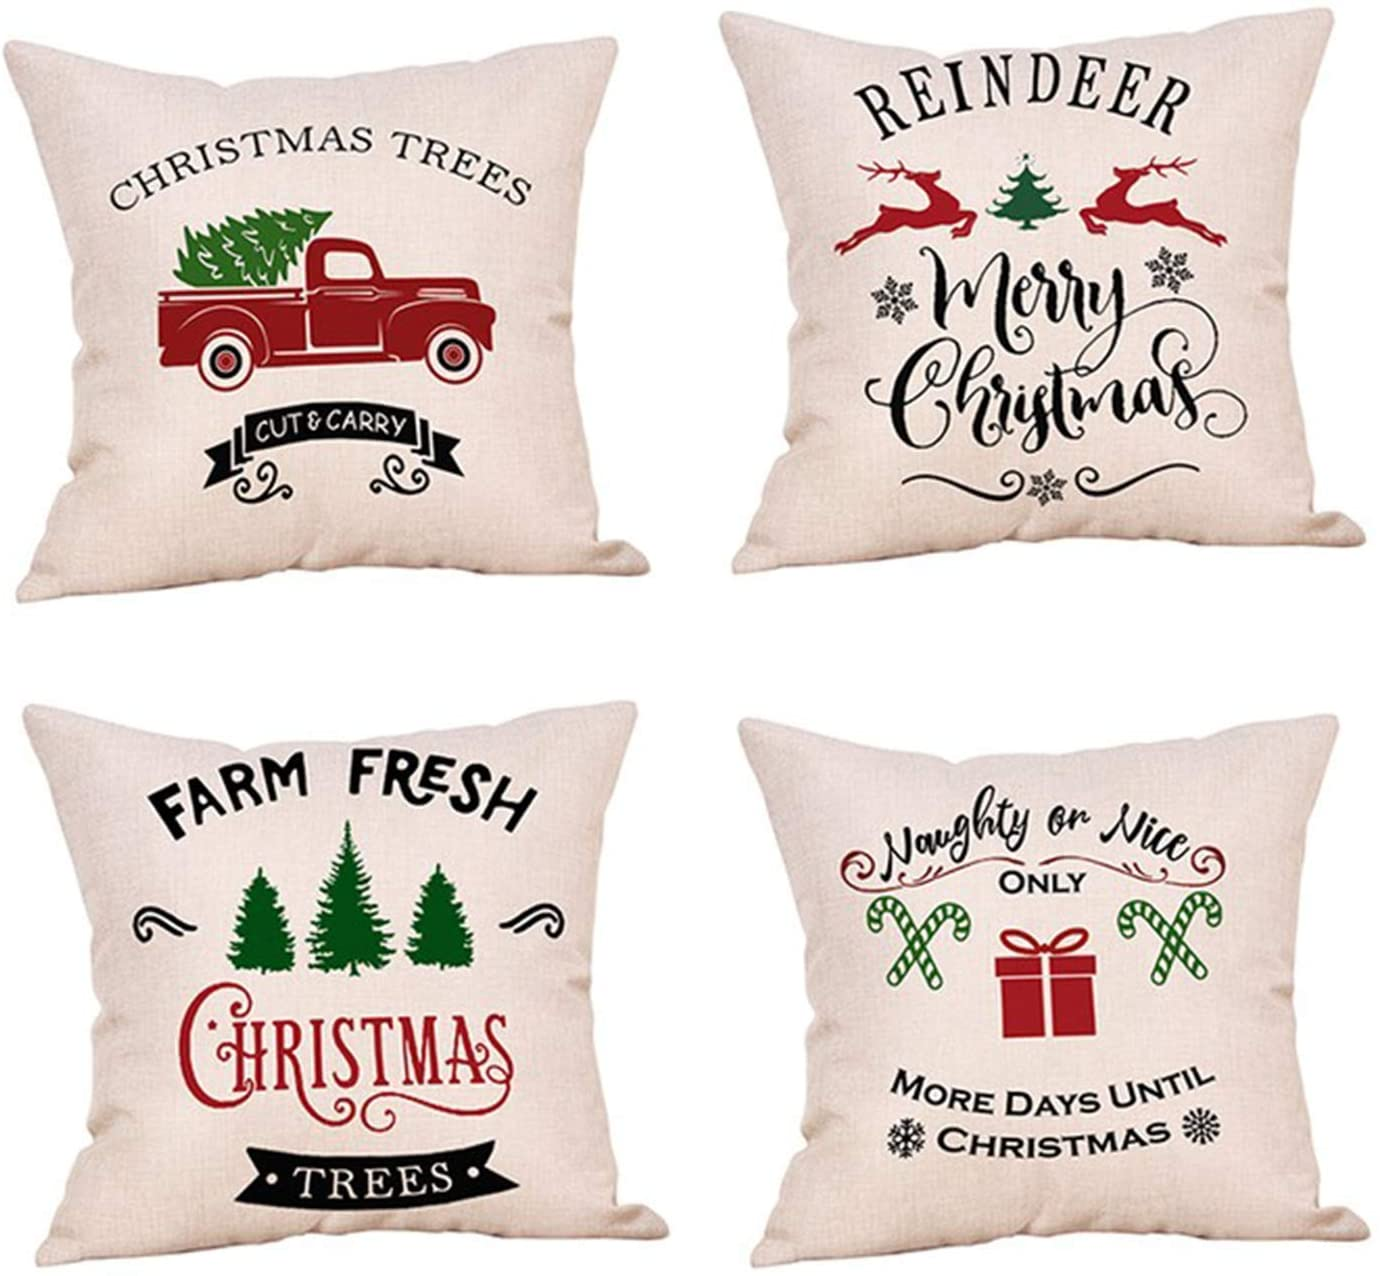 MOLECOLE Christmas Throw Pillow Cover, 18 x 18 Inch Farmhouse Decorations Winter Holiday Rustic Linen Cushion Case Christmas Pillows Christmas Decorations Set of 4